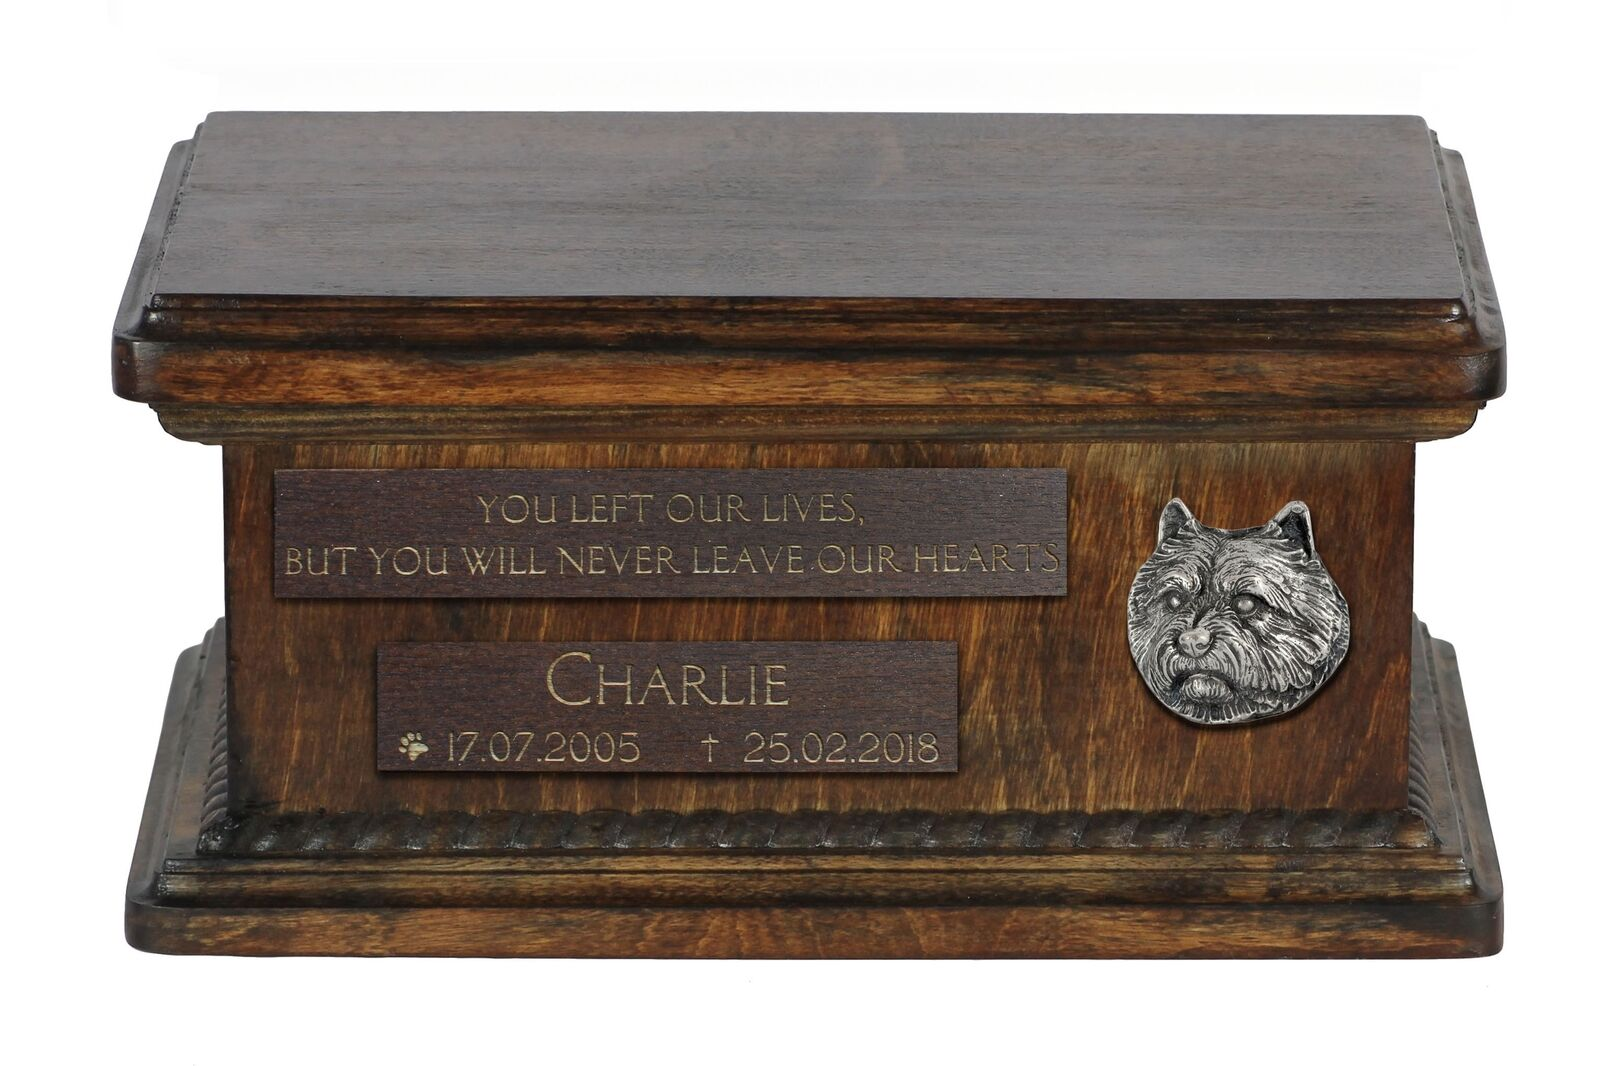 Norwich Terrier - wooden urn for dog's ashes low model Art Dog